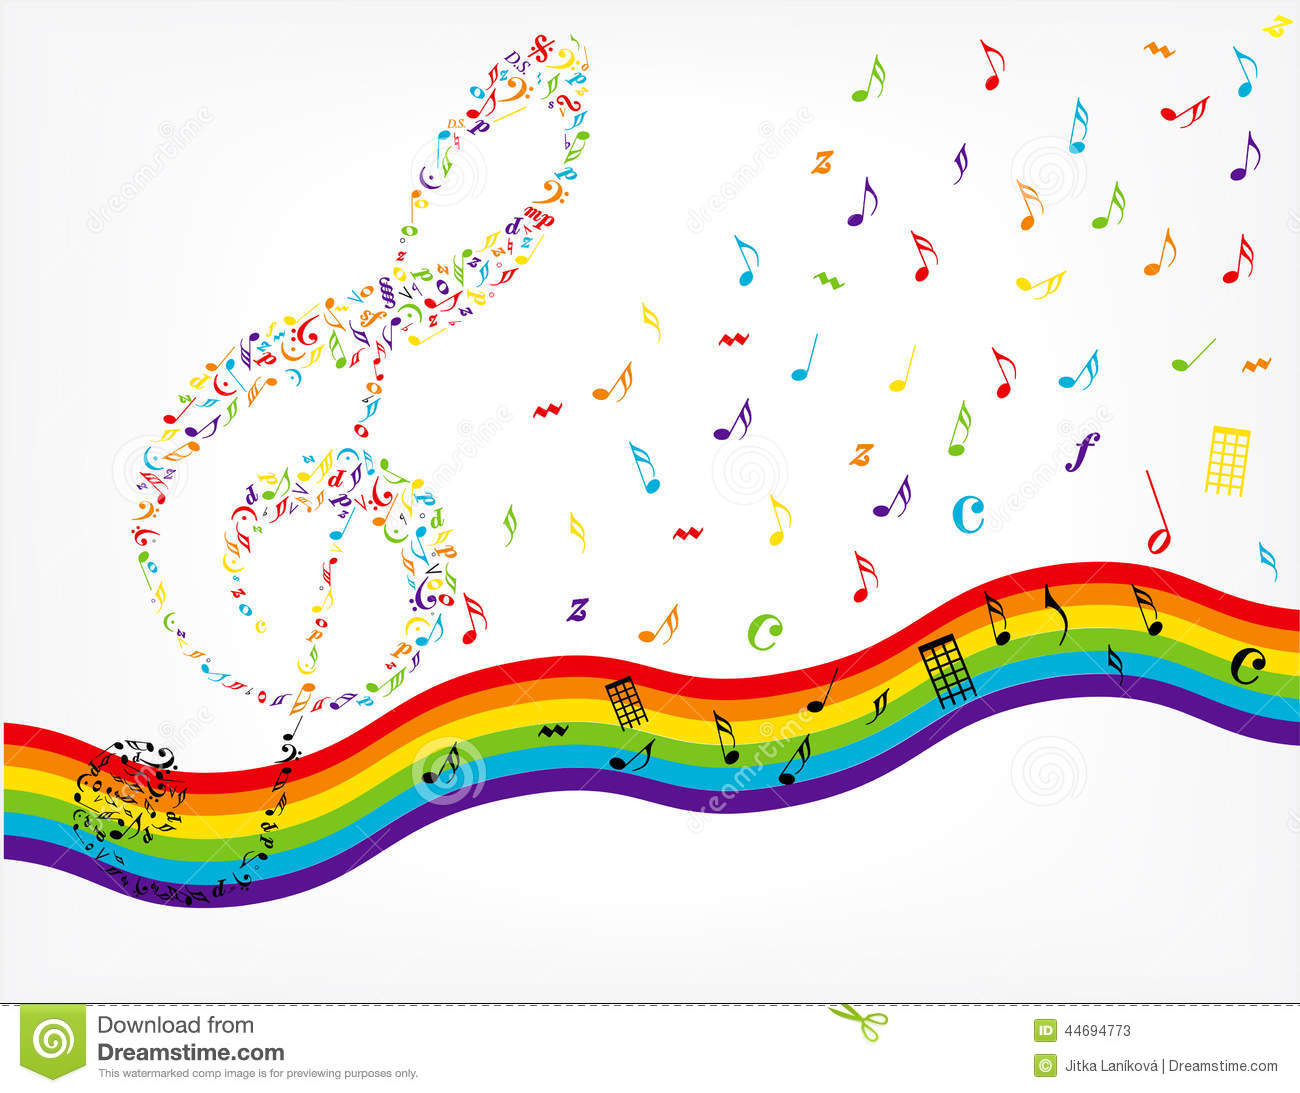 music notes background stock vector illustration of musical staff clip art music staff clipart vector